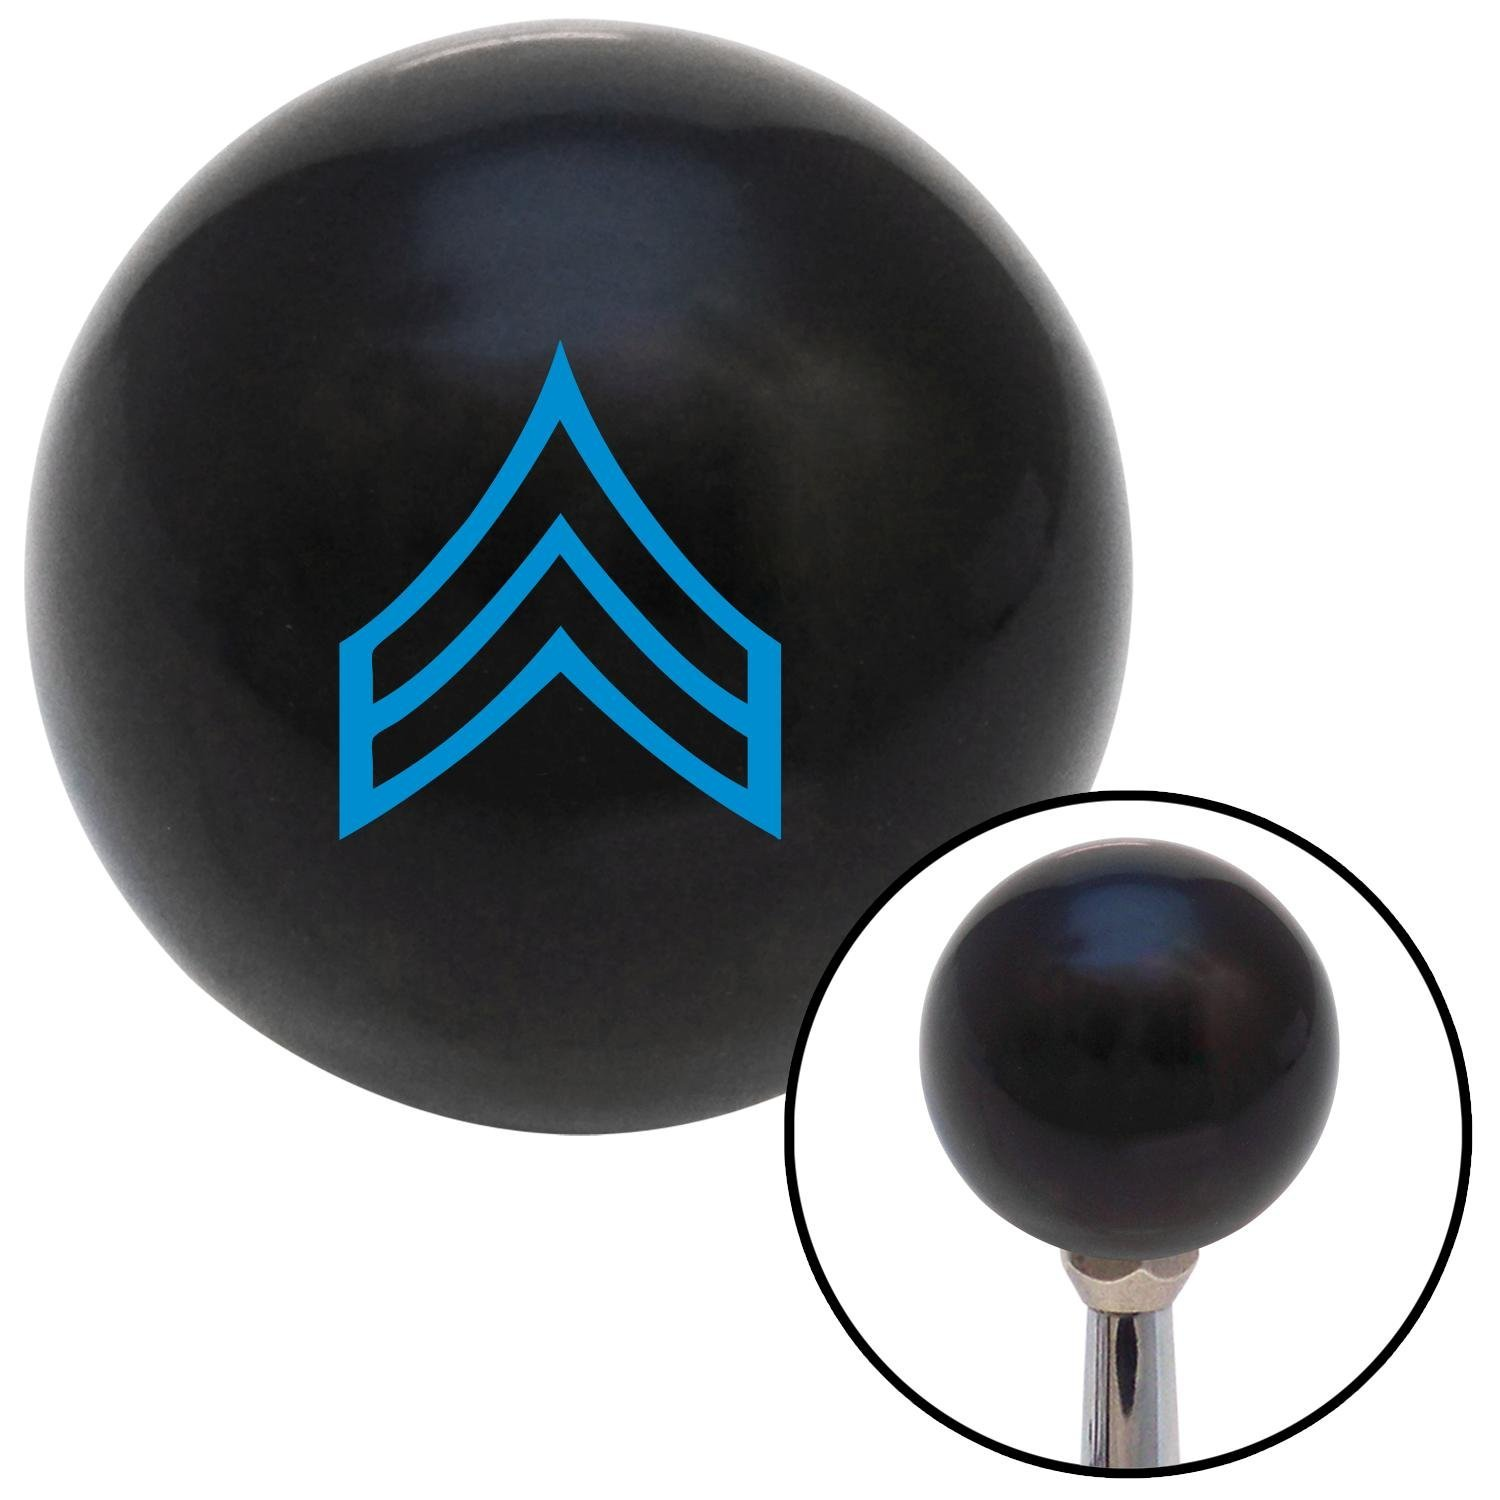 Blue Corporal American Shifter 106555 Black Shift Knob with M16 x 1.5 Insert